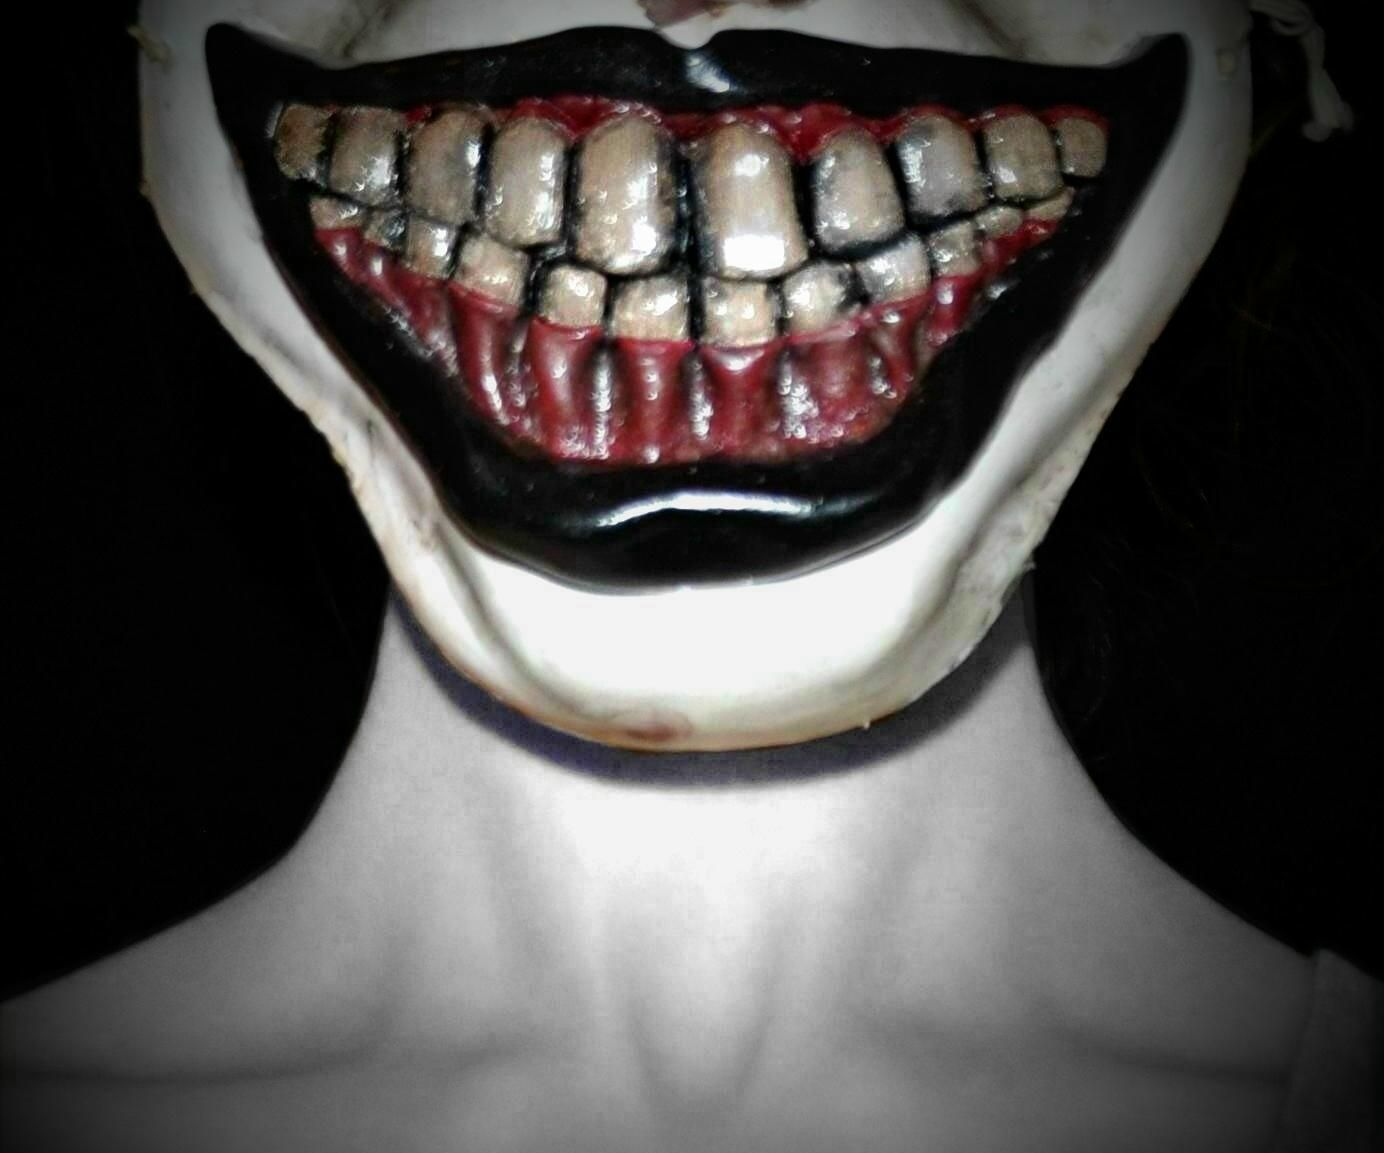 How to make Twisty the clown's mask